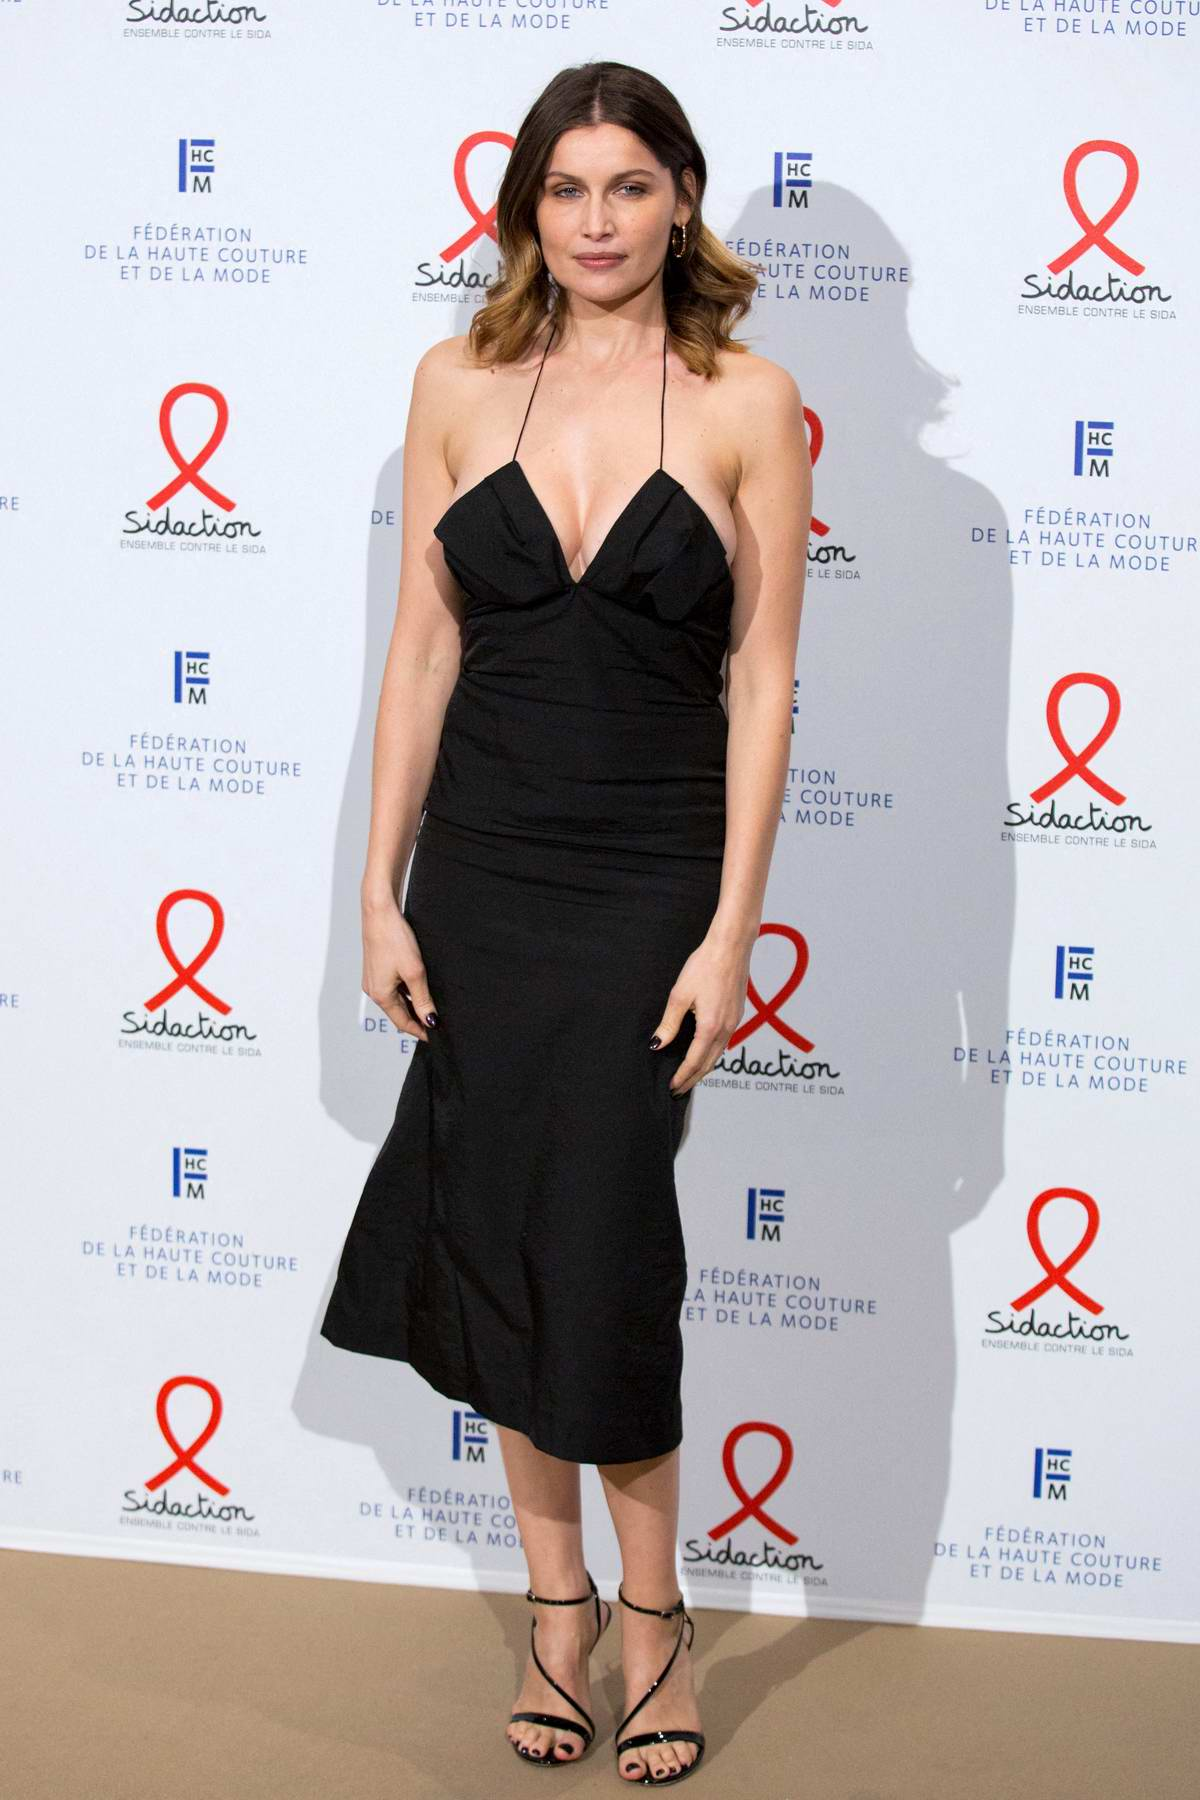 Laetitia Casta attends the 18th Fashion Dinner For AIDS Sidaction Association in Paris, France